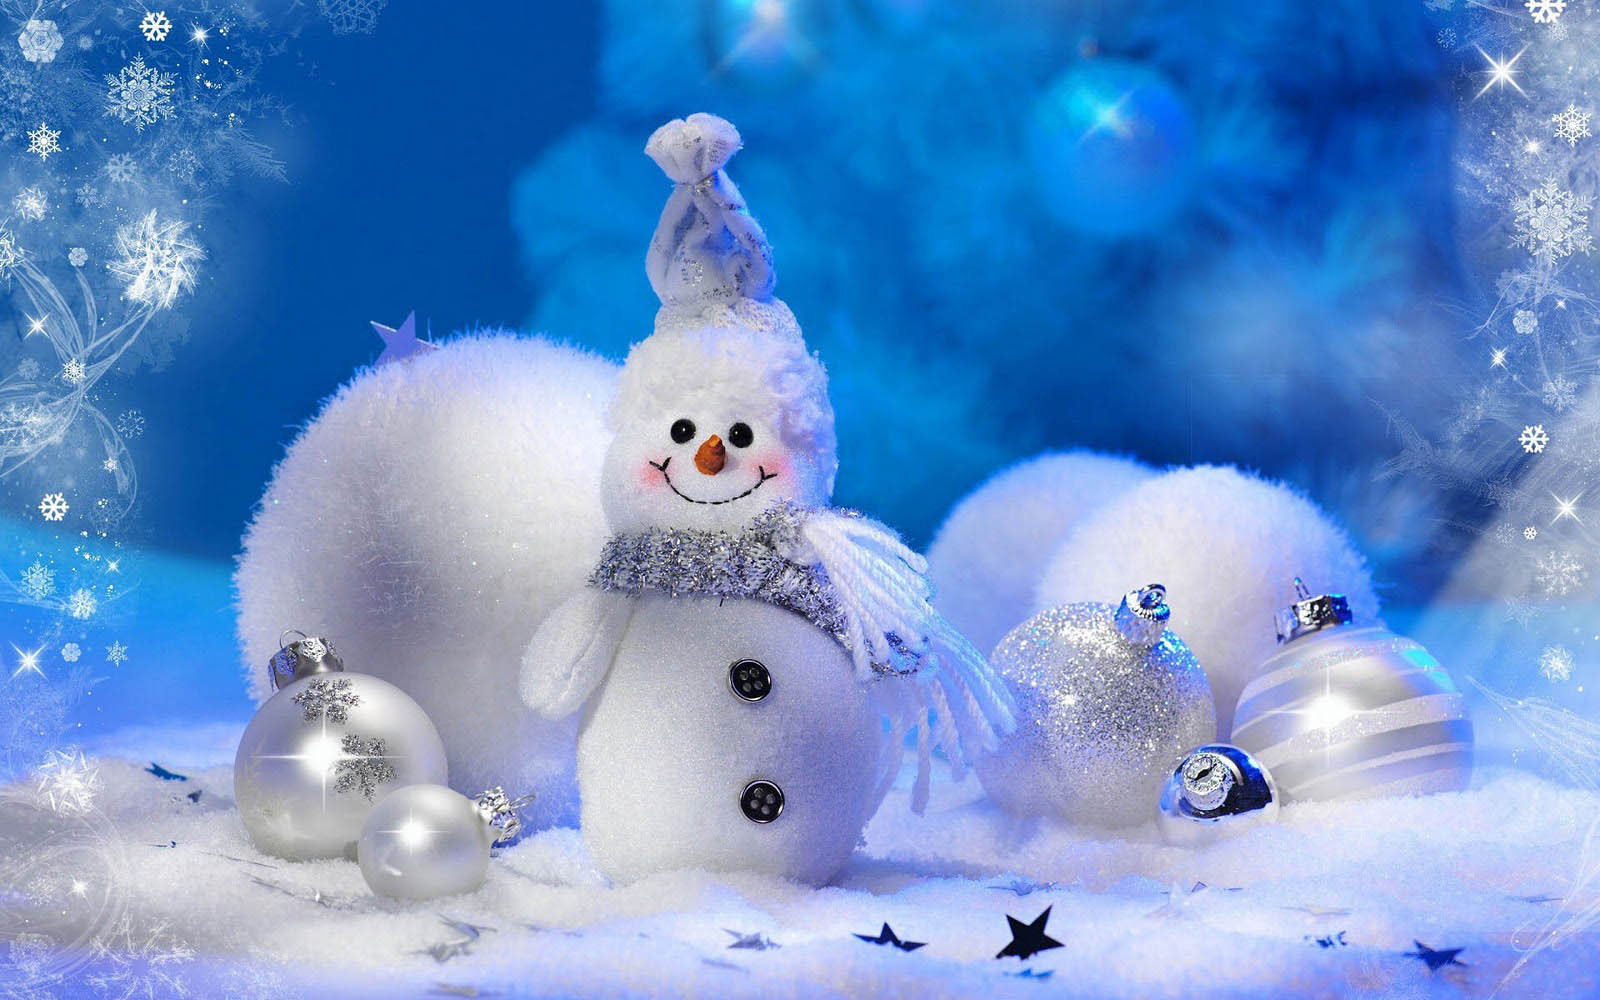 wallpapers: Snowman Wallpapers